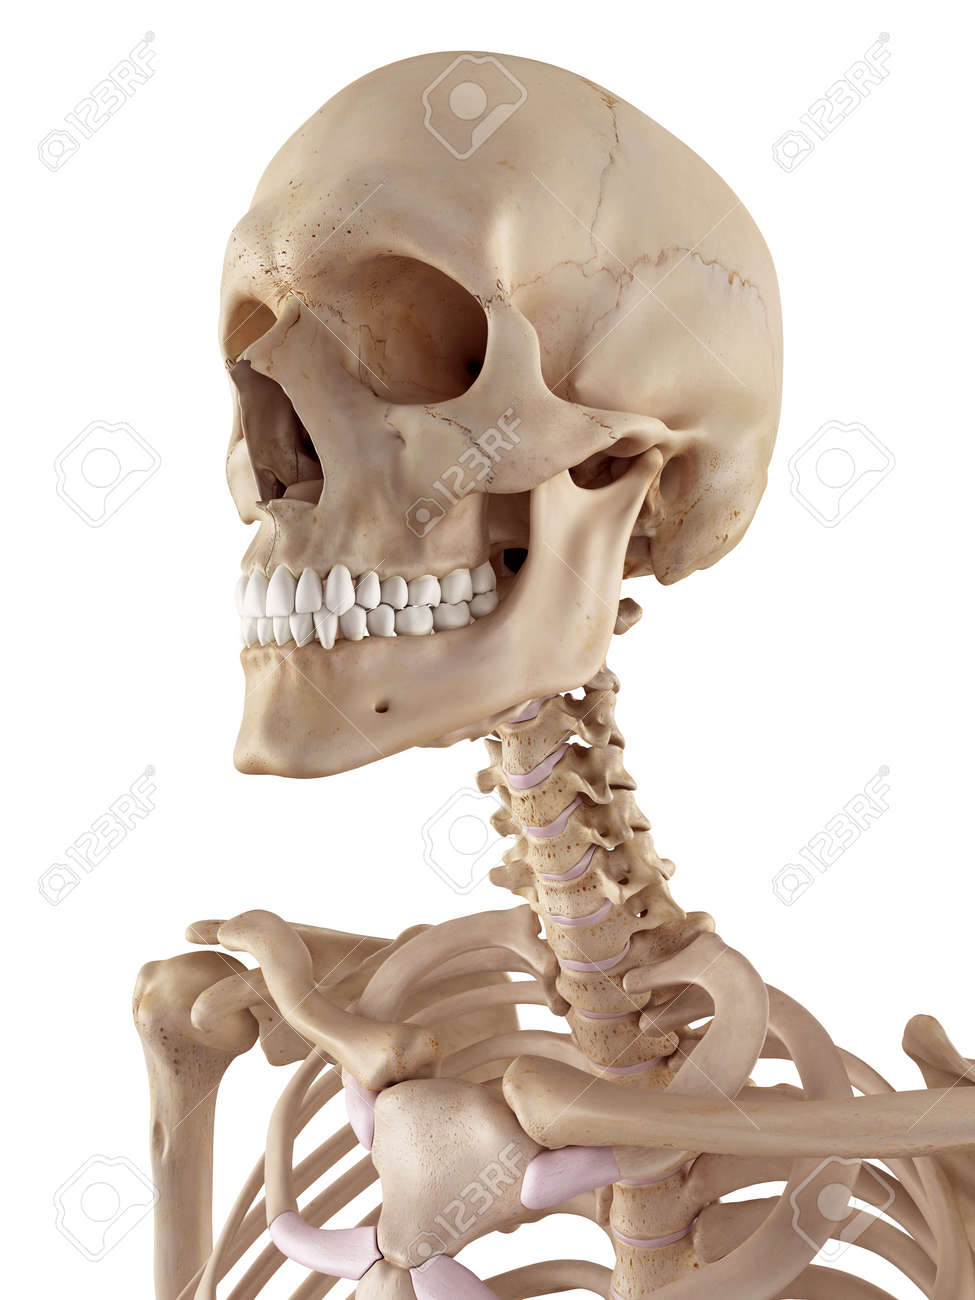 Medical Accurate Illustration Of The Human Skull And Neck Stock ...